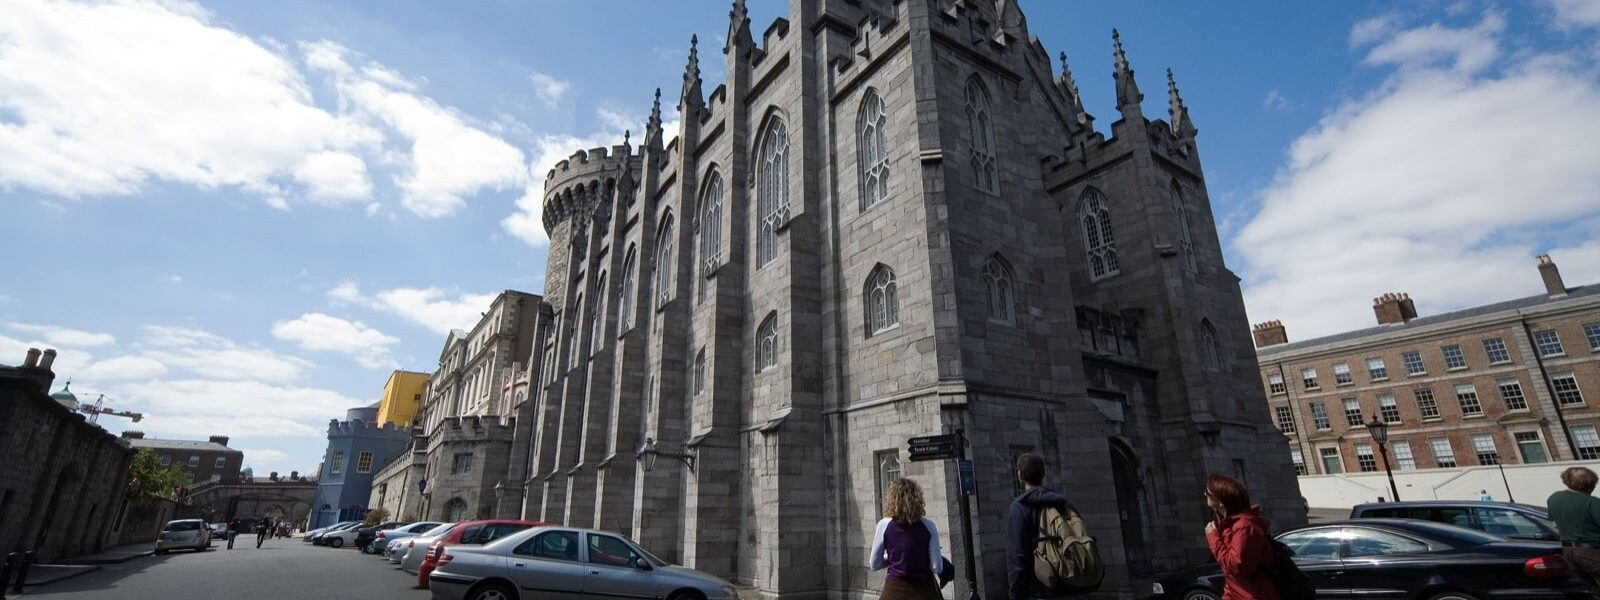 Dublin Castle - informatique - cc